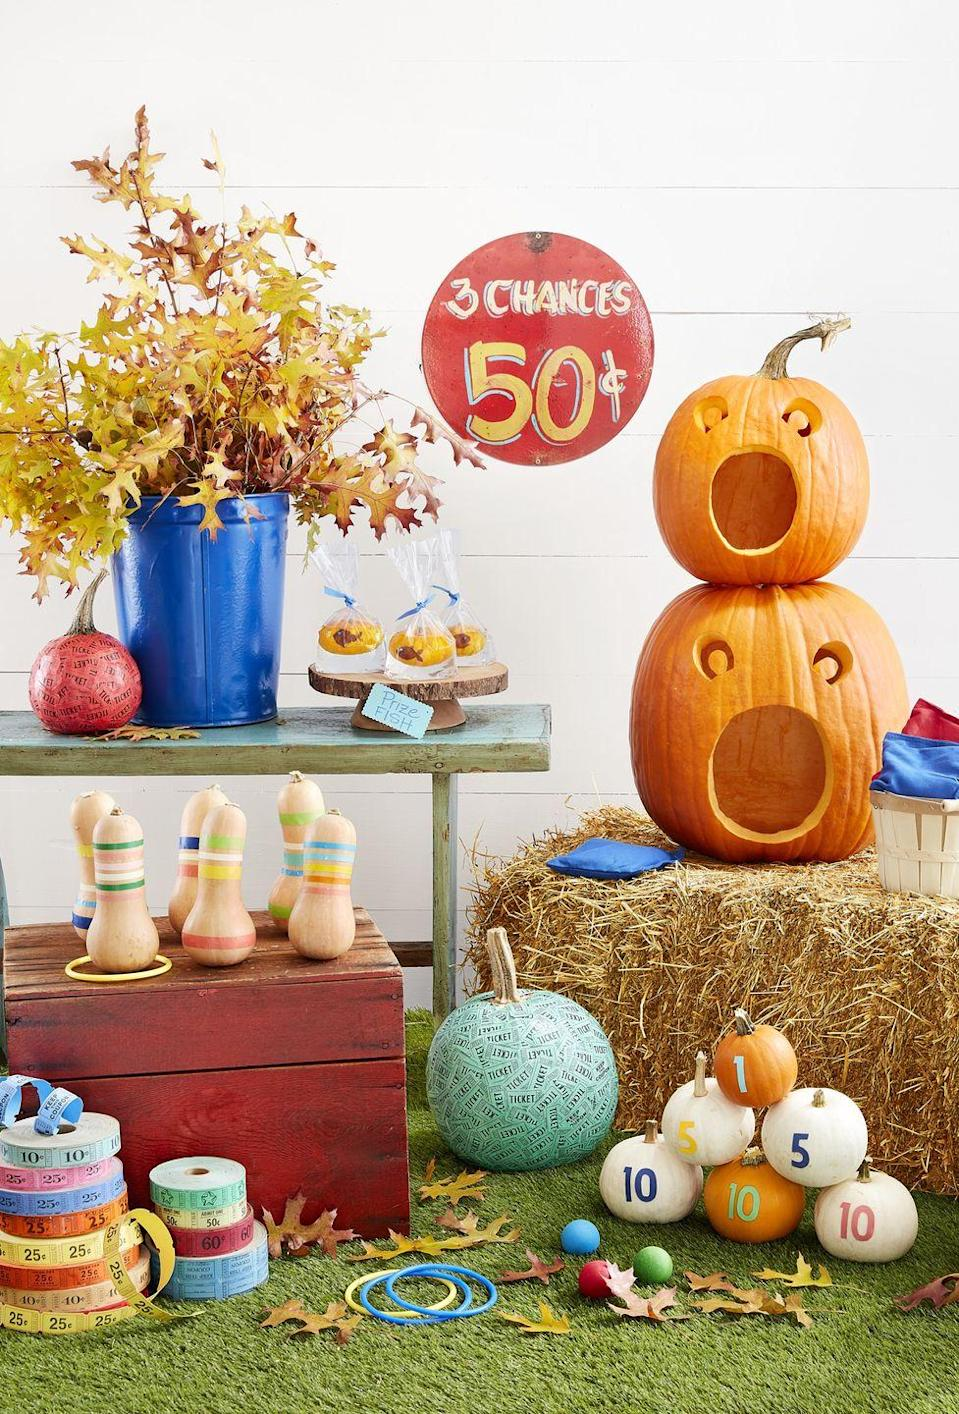 "<p>Is your annual fall fair cancelled this year? Set up your own at home for a fun-filled weekend extravaganza, complete with a gourd ring toss, pumpkin knock-down game, and fun prizes for all. </p><p><a class=""link rapid-noclick-resp"" href=""https://www.amazon.com/Nice-purchase-Realistic-Artificial-Thanksgiving/dp/B07GTSGW4Q/?tag=syn-yahoo-20&ascsubtag=%5Bartid%7C10050.g.2633%5Bsrc%7Cyahoo-us"" rel=""nofollow noopener"" target=""_blank"" data-ylk=""slk:SHOP MINI PUMPKINS"">SHOP MINI PUMPKINS</a></p>"